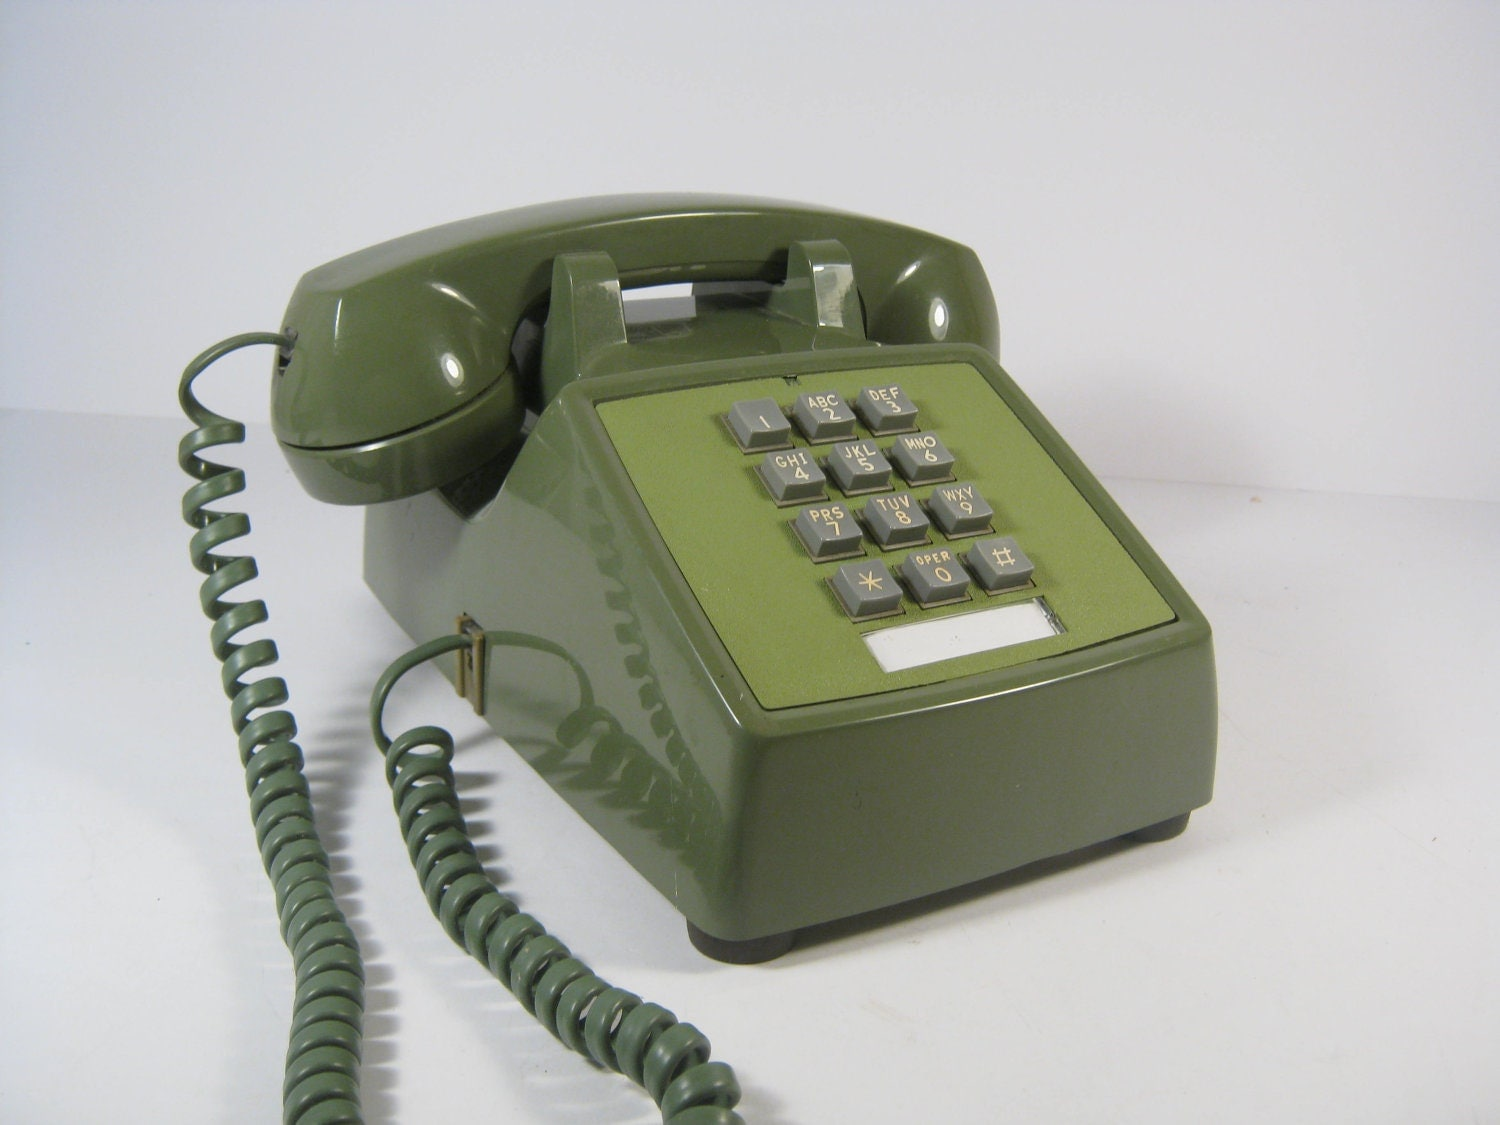 vintage avocado green push button telephone 1970 39 s push. Black Bedroom Furniture Sets. Home Design Ideas